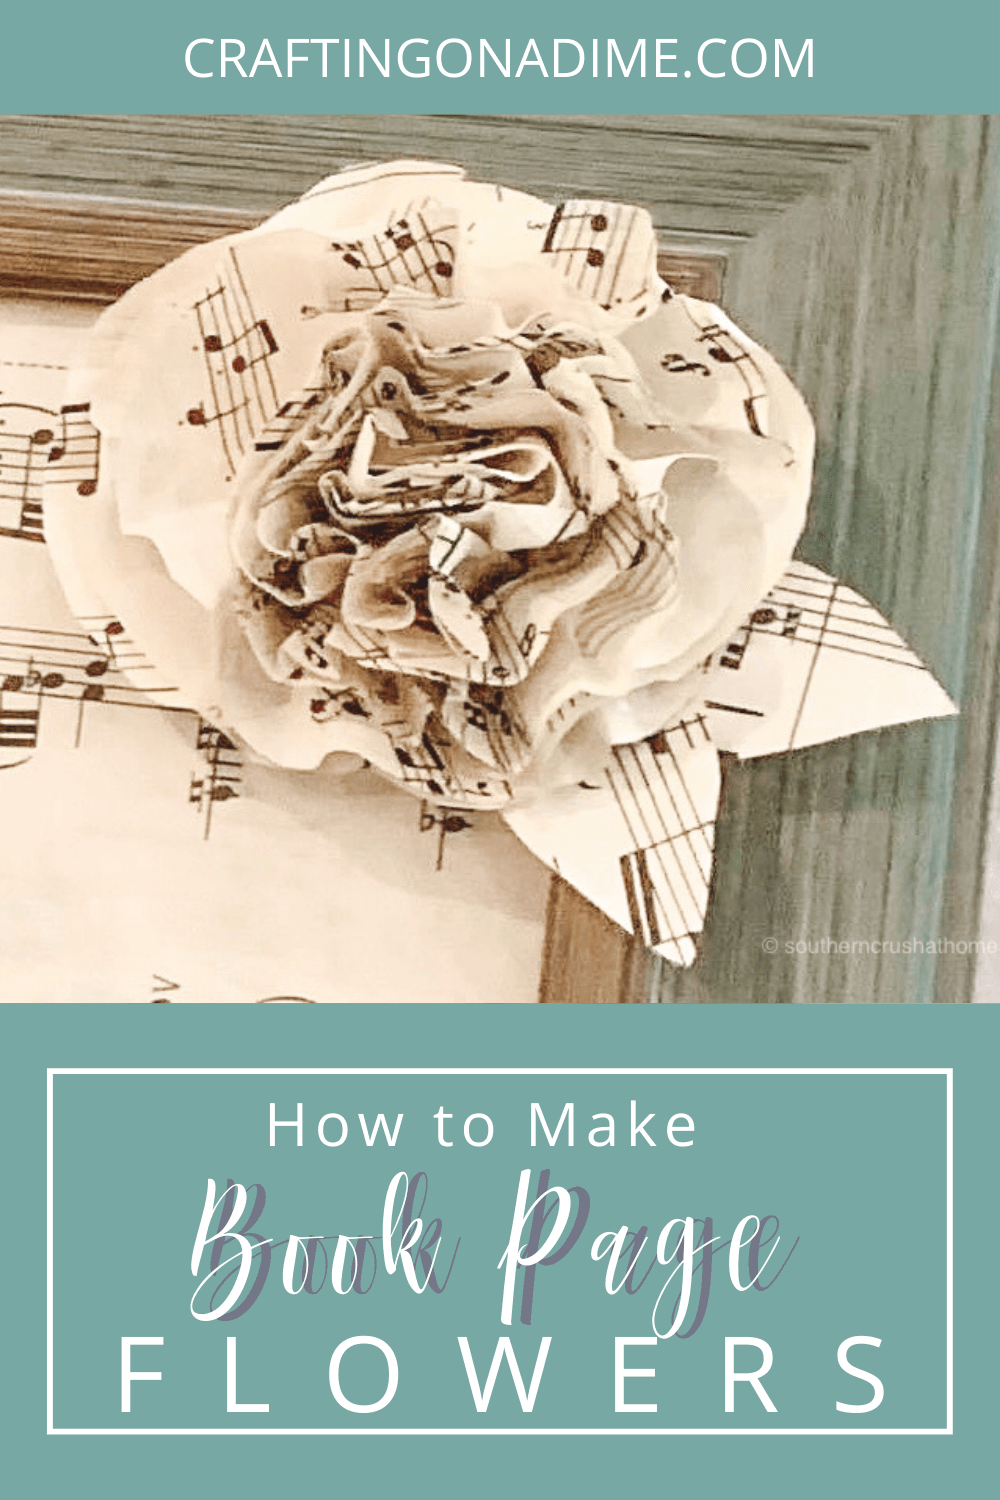 How to make book page flowers